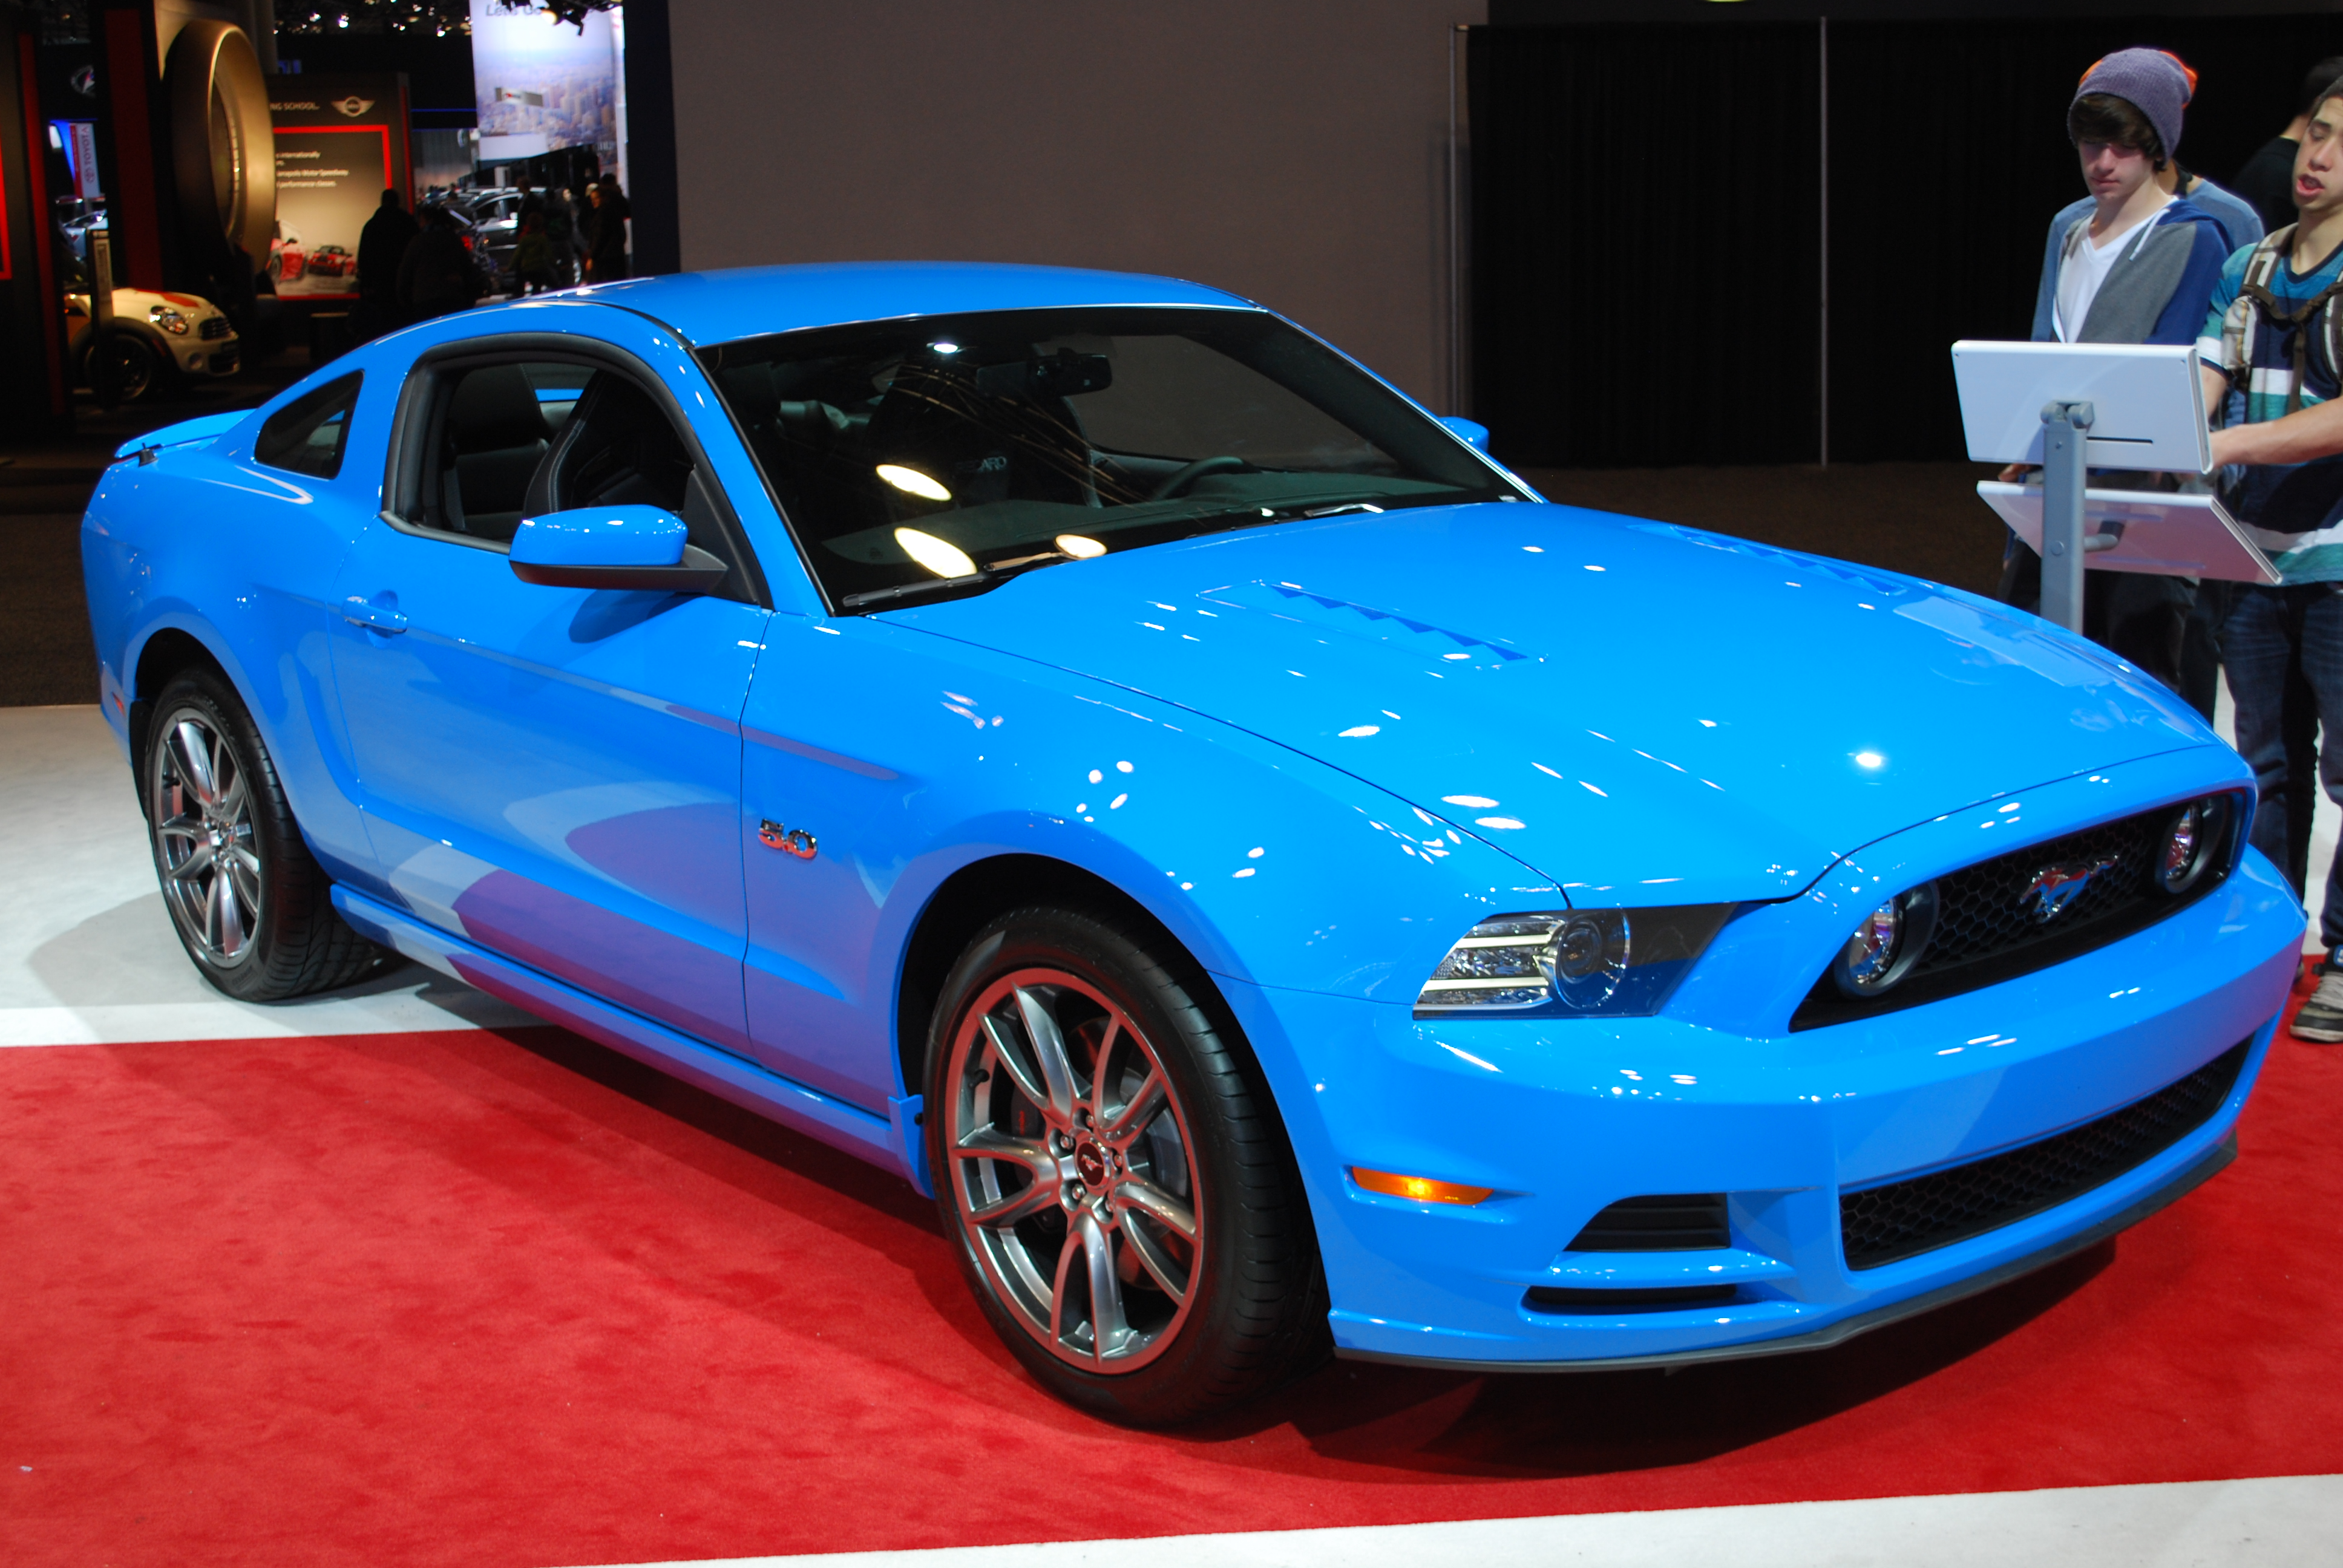 2014 FORD Mustang GT Premium Coupe (II) by HardRocker78